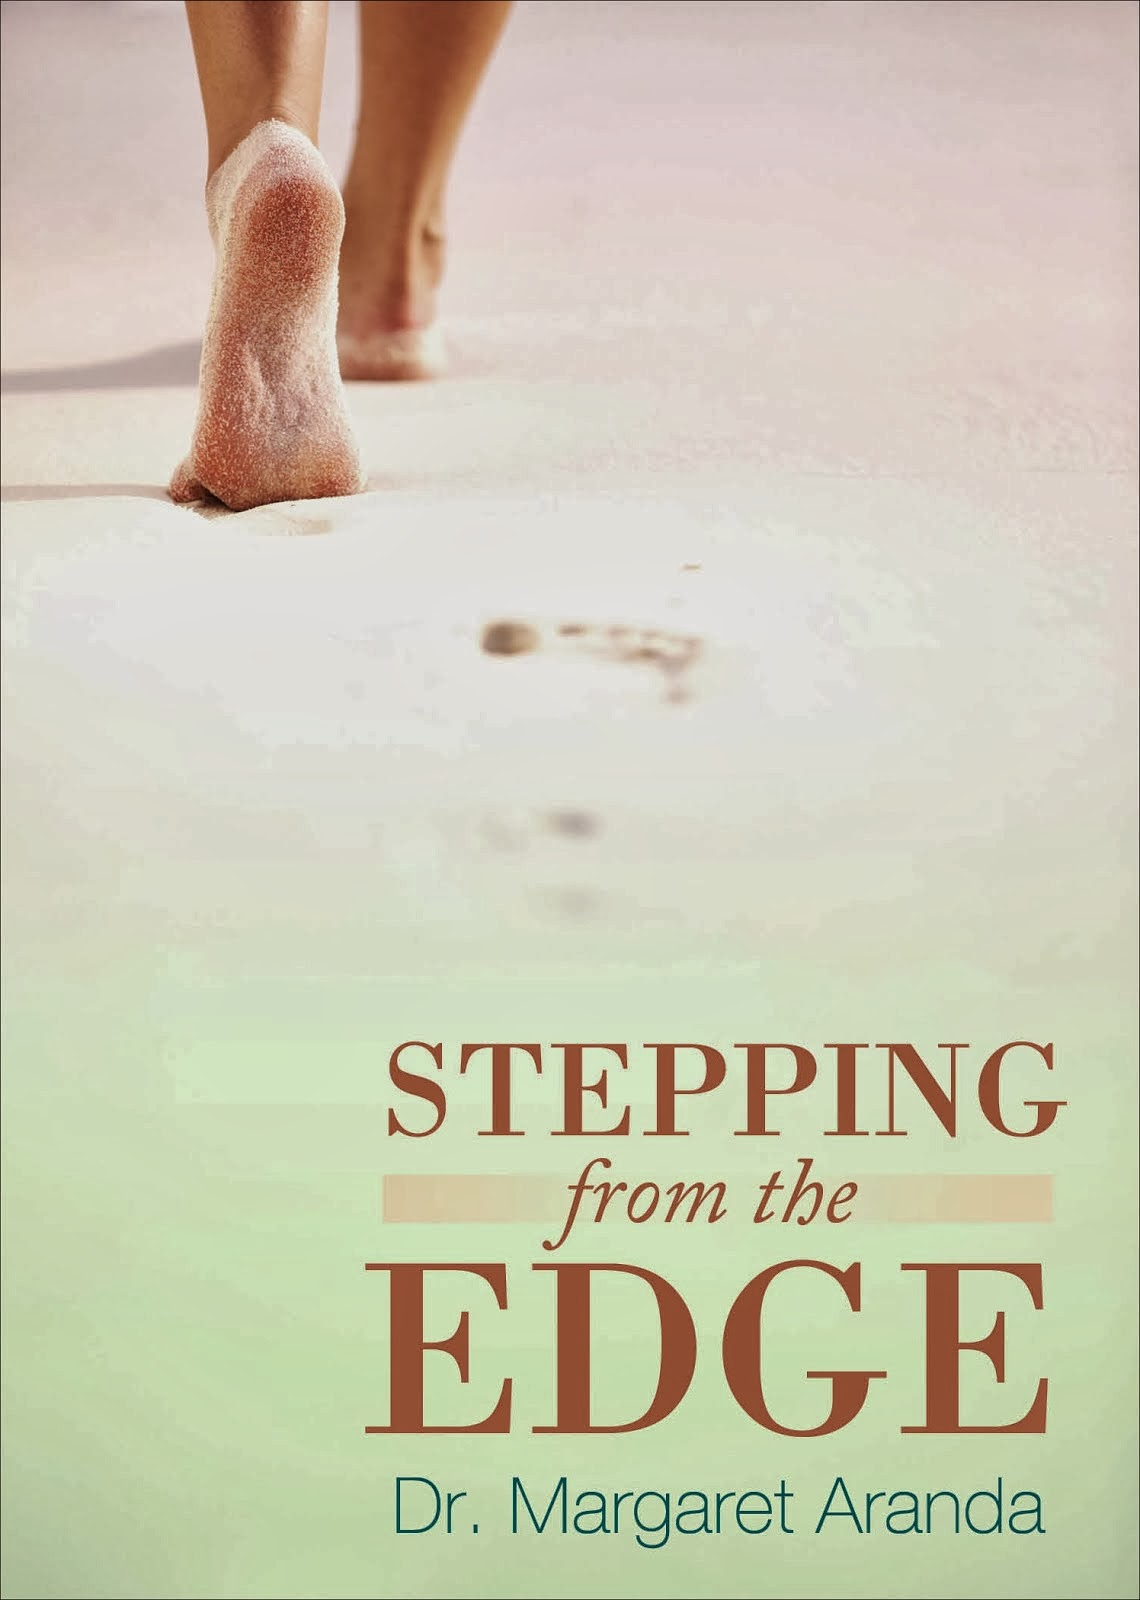 BOOK #2: STEPPING FROM THE EDGE